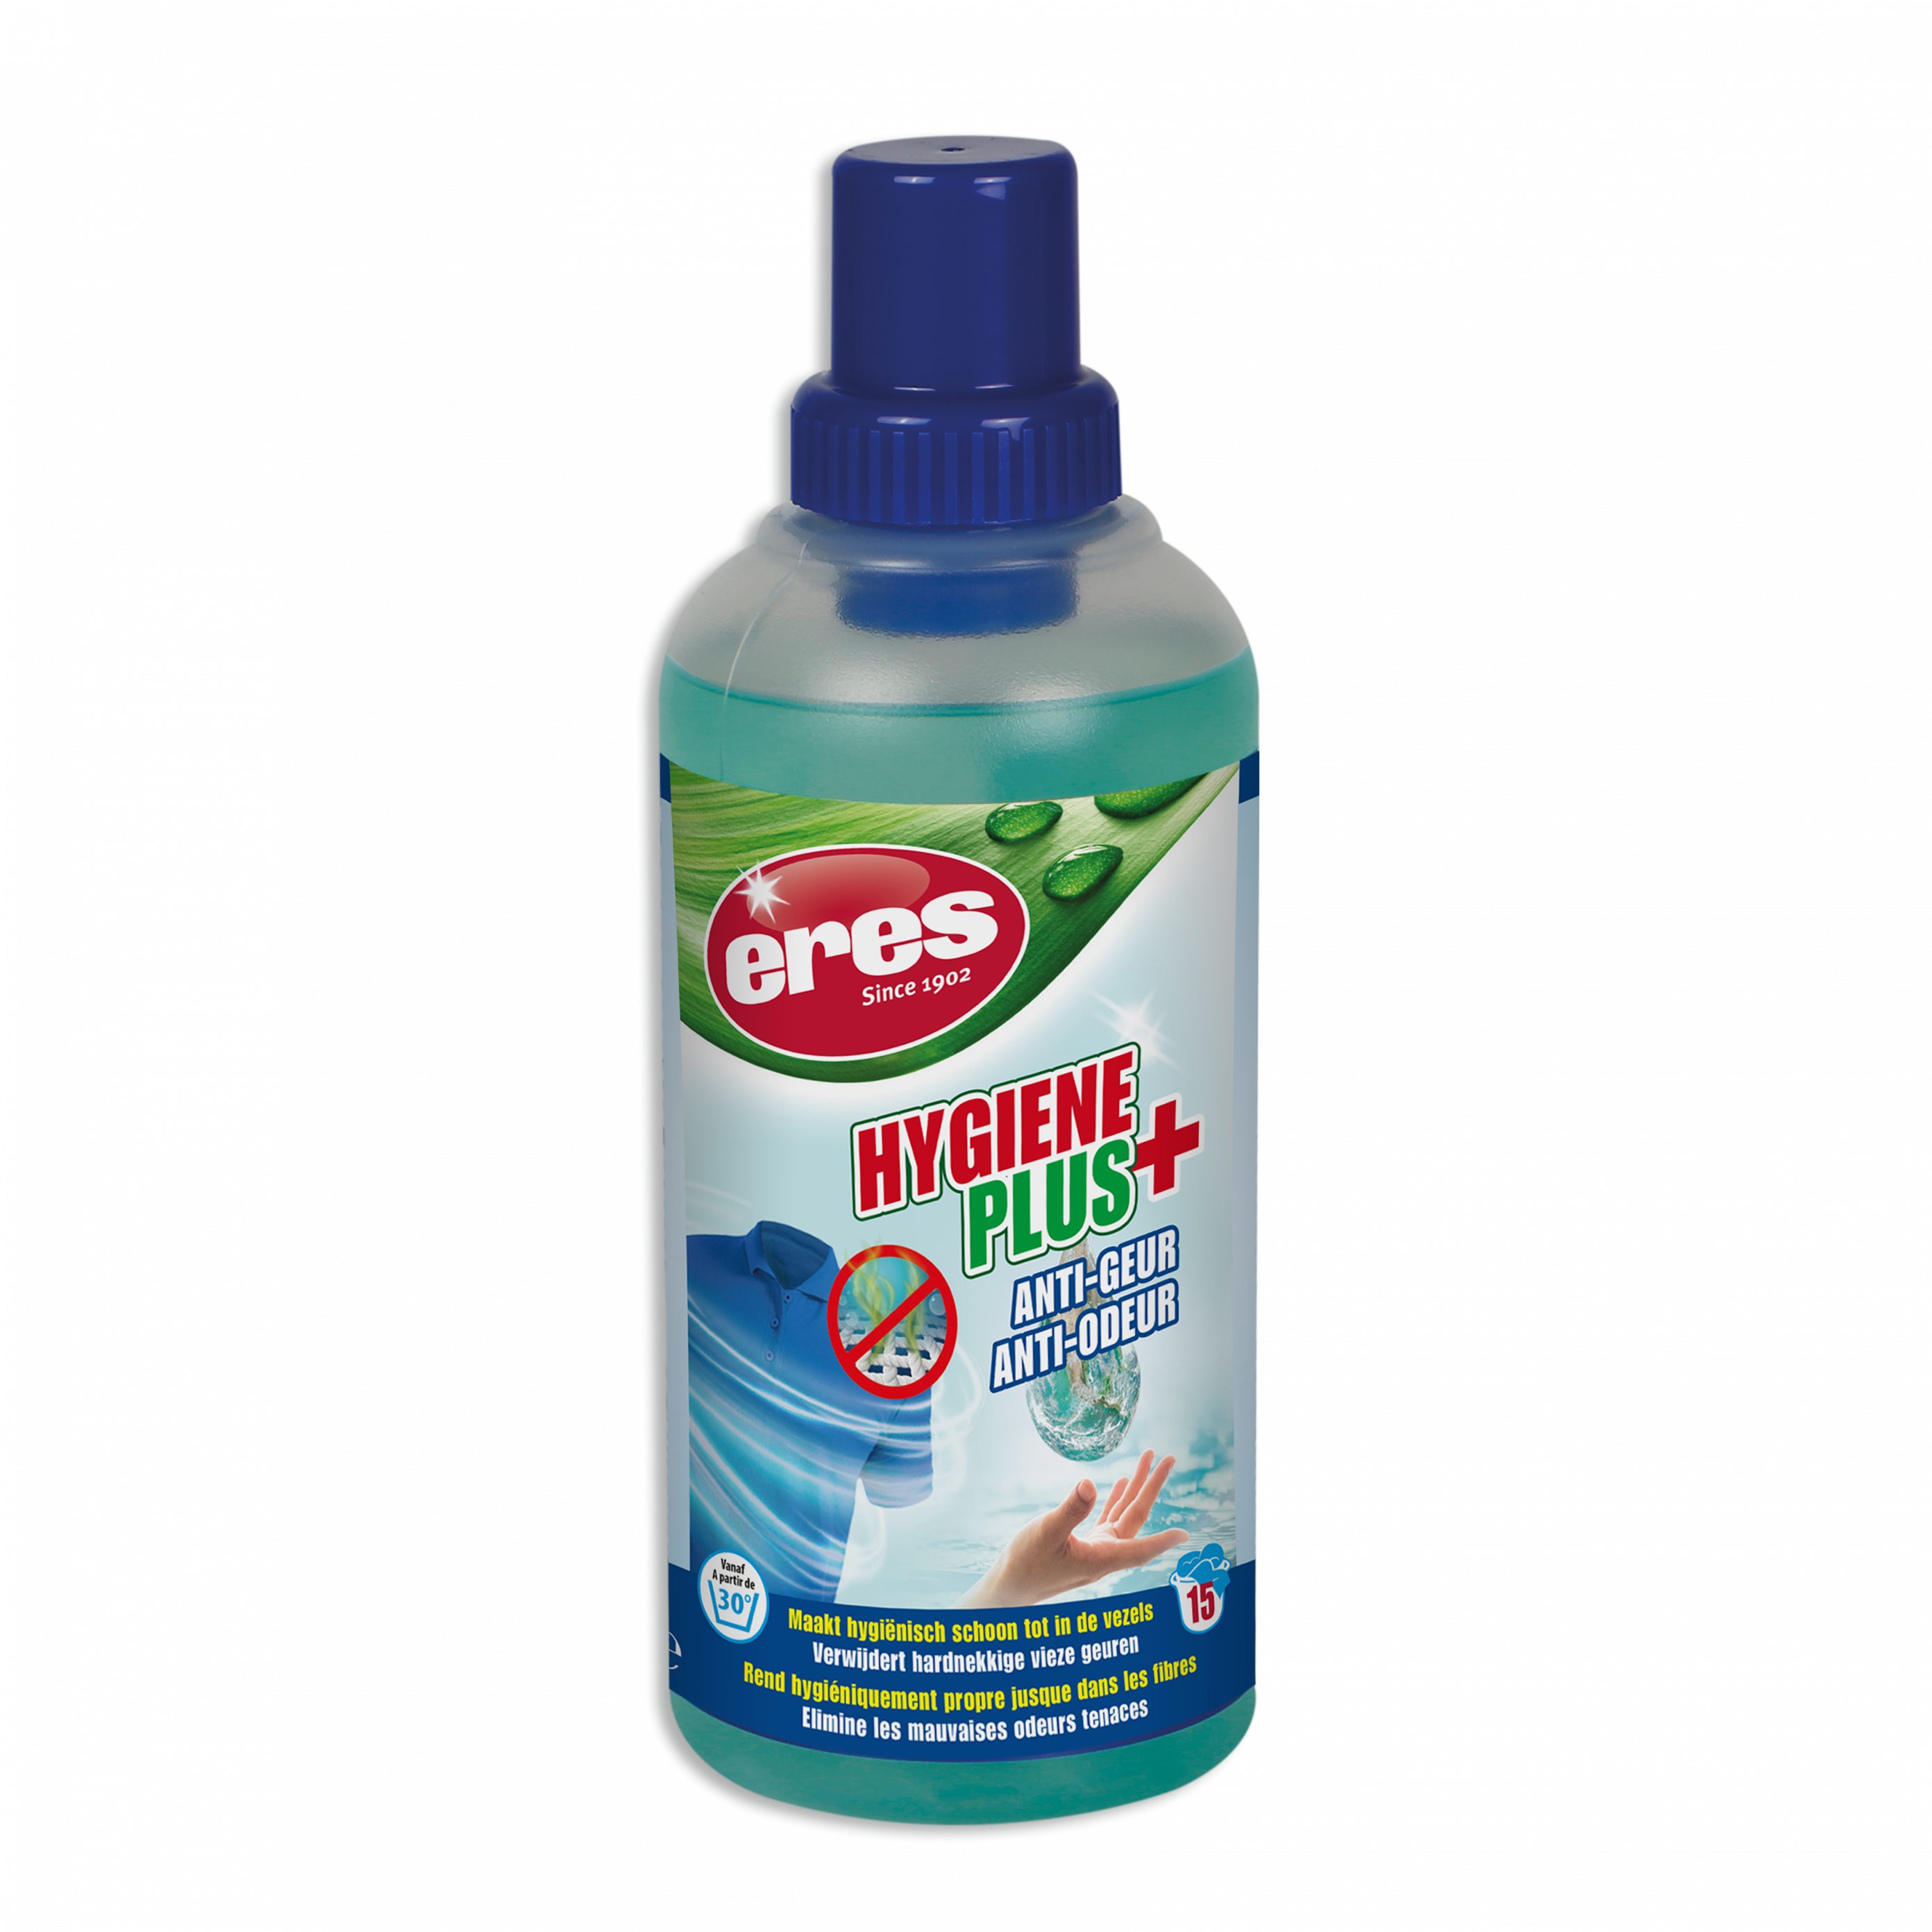 HYGIENE PLUS+ ANTI-ODOR